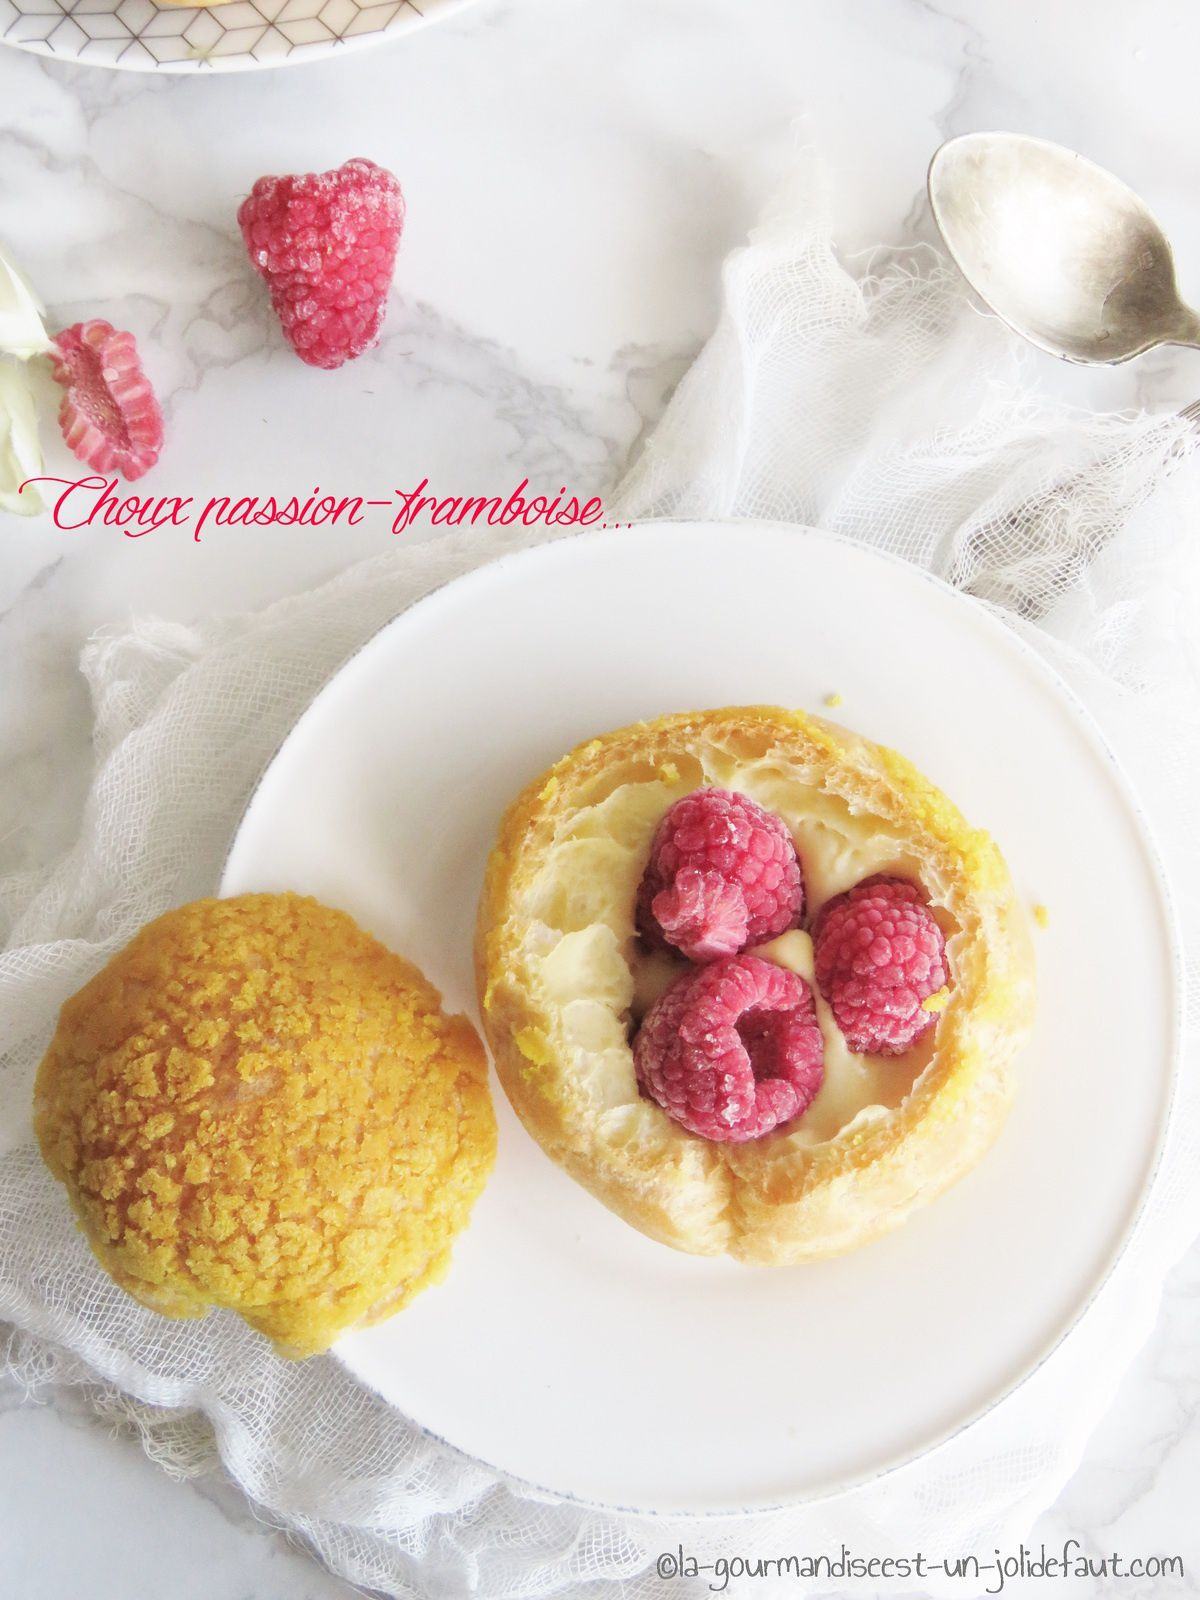 Choux Passion-framboise